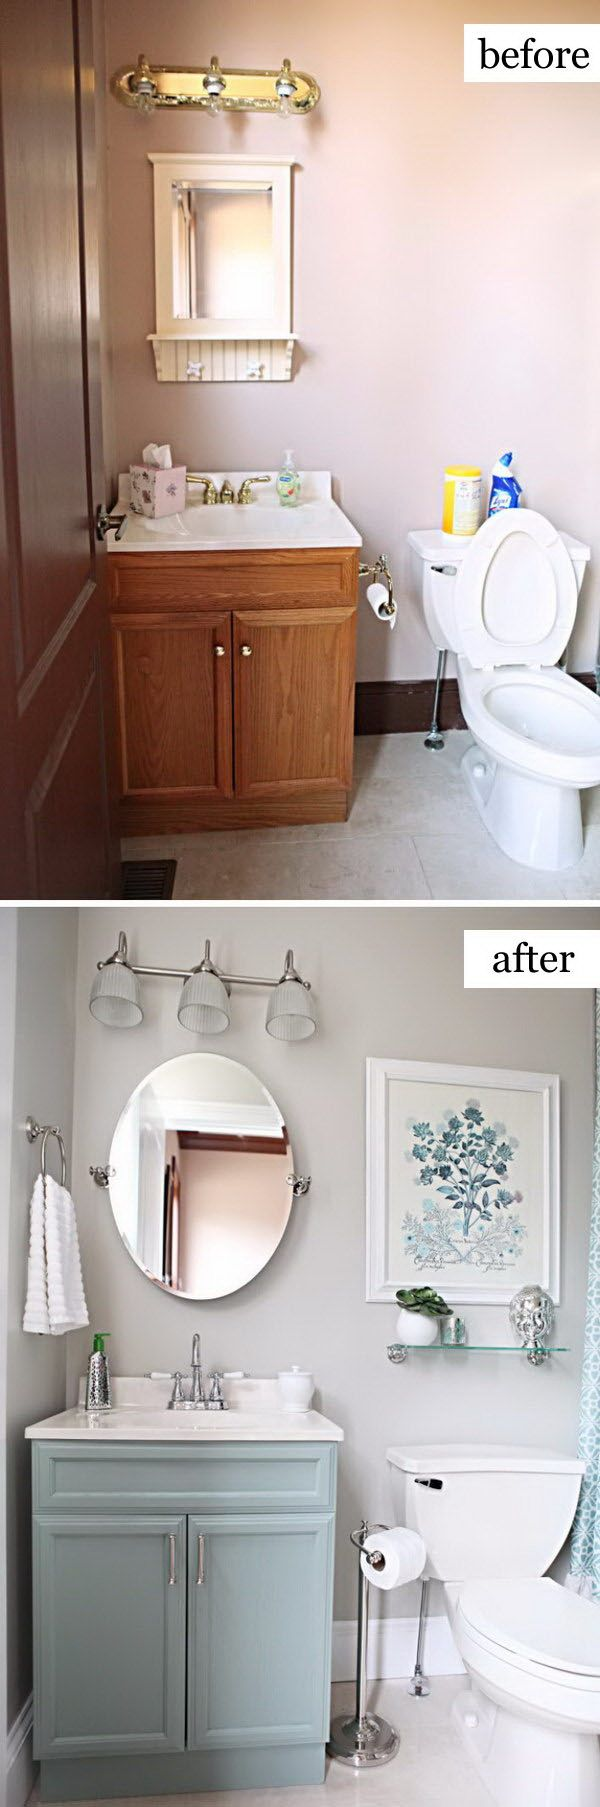 Bathroom Renovation Ideas Before And After best 25+ half bathroom remodel ideas on pinterest | half bathroom